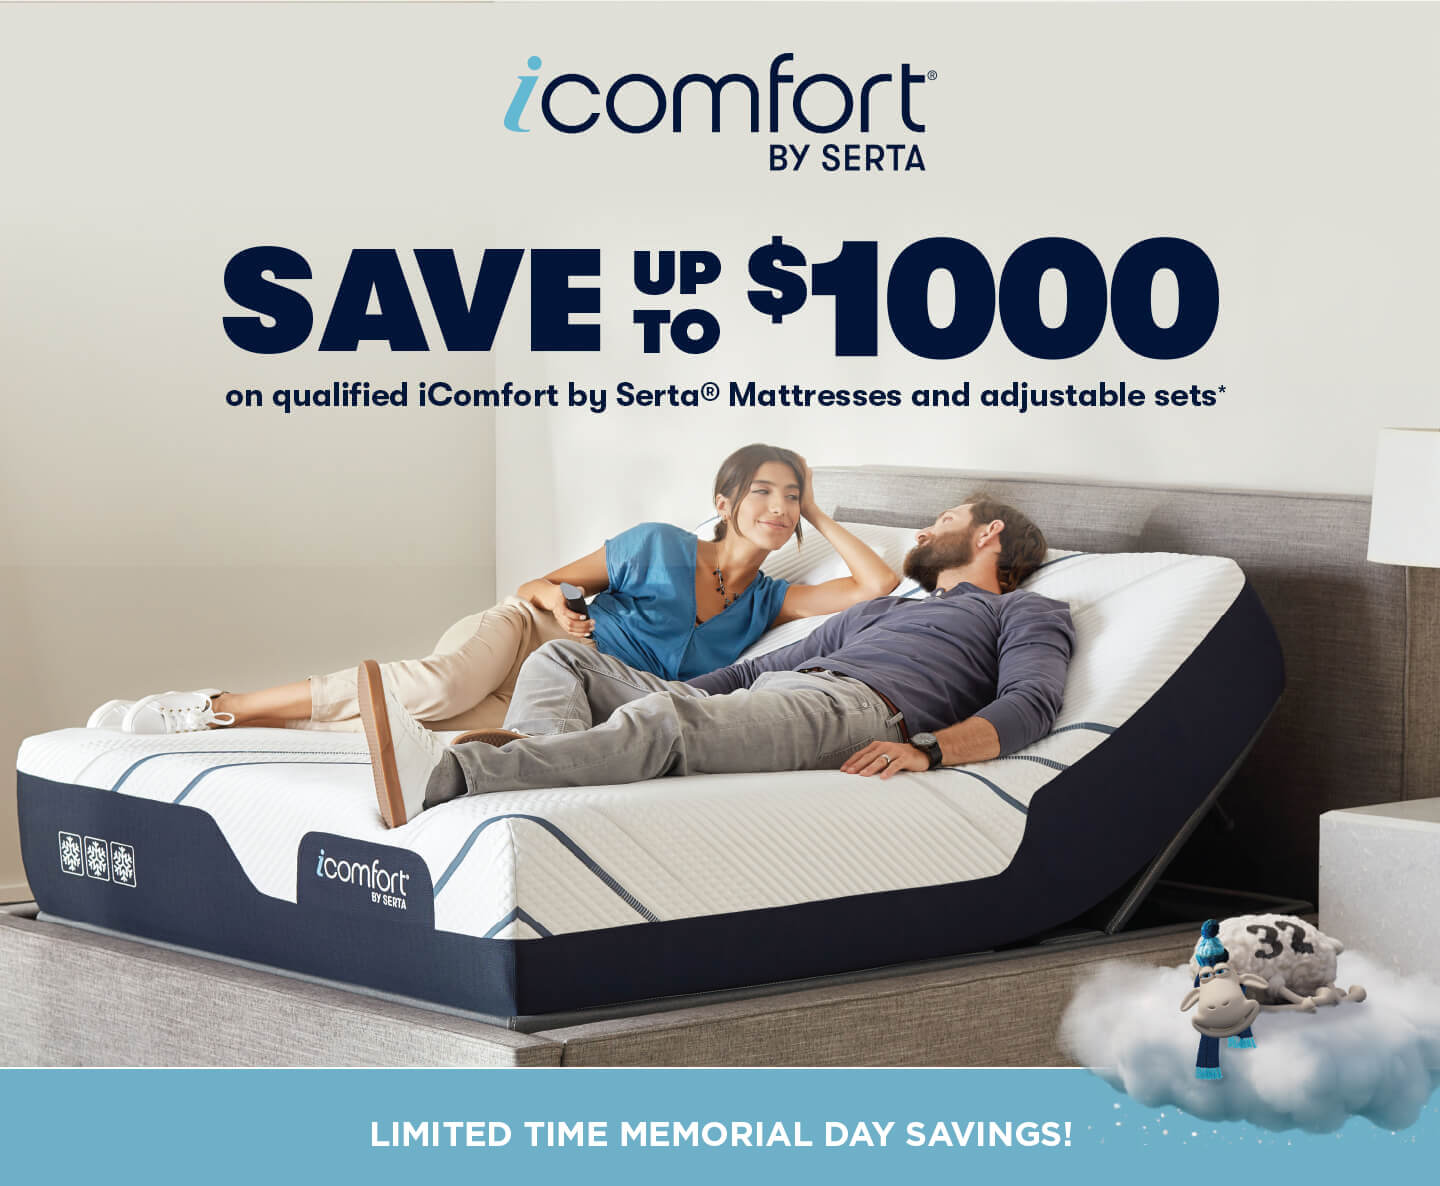 Save up to $1000 on Serta iComfort mattresses and adjustable sets!